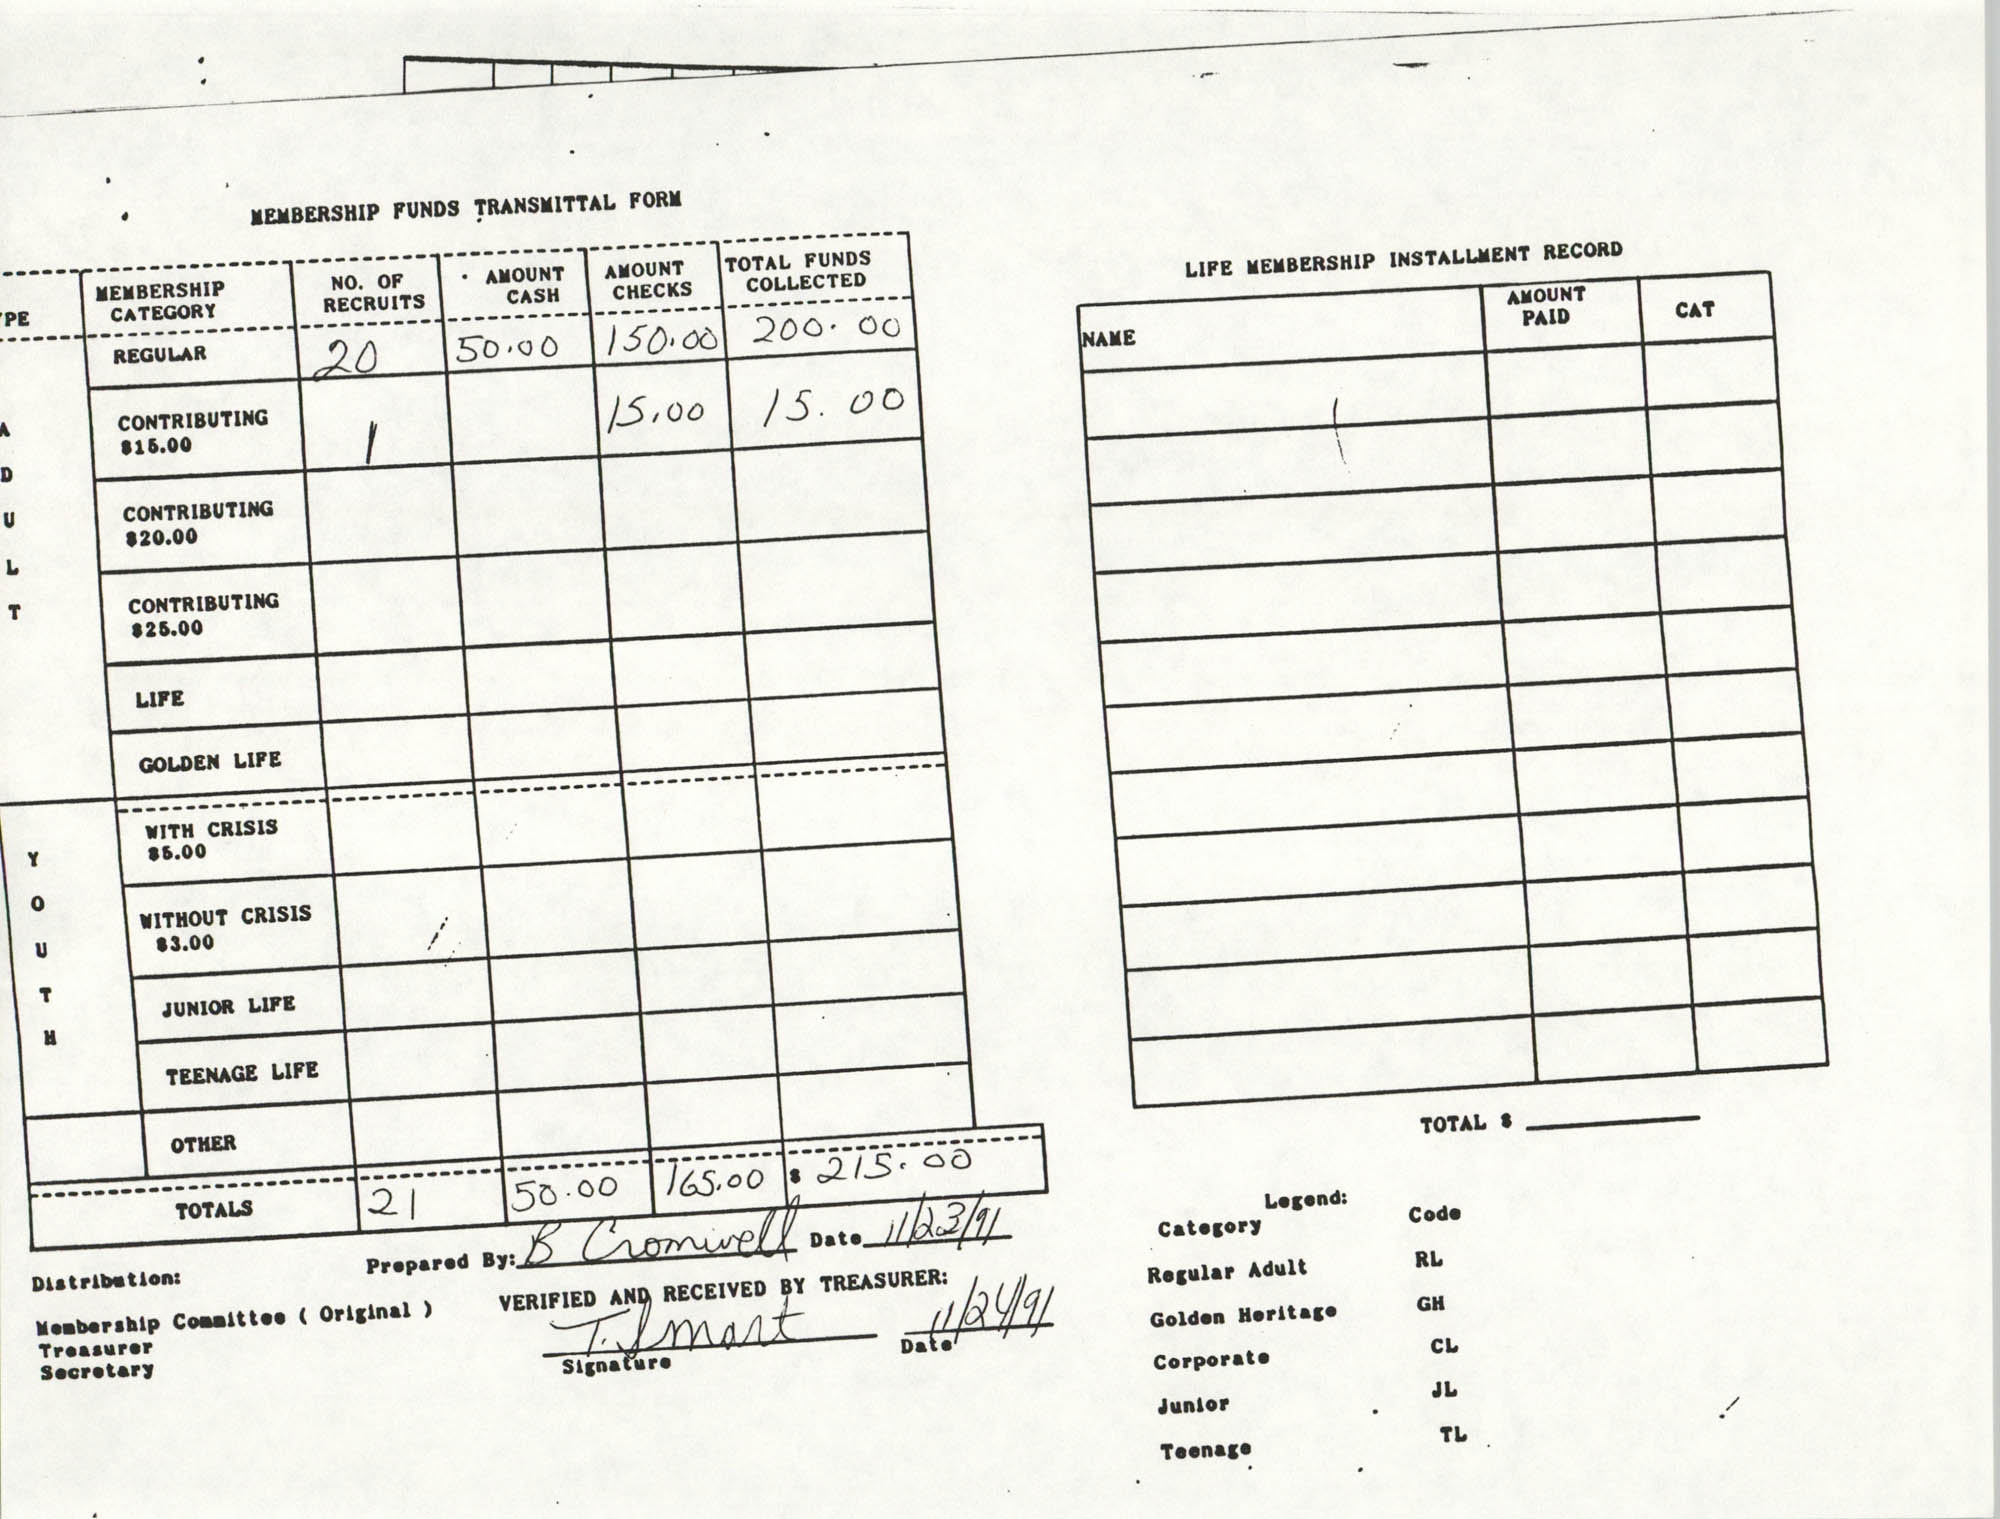 Charleston Branch of the NAACP Funds Transmittal Forms, November 1991, Page 3